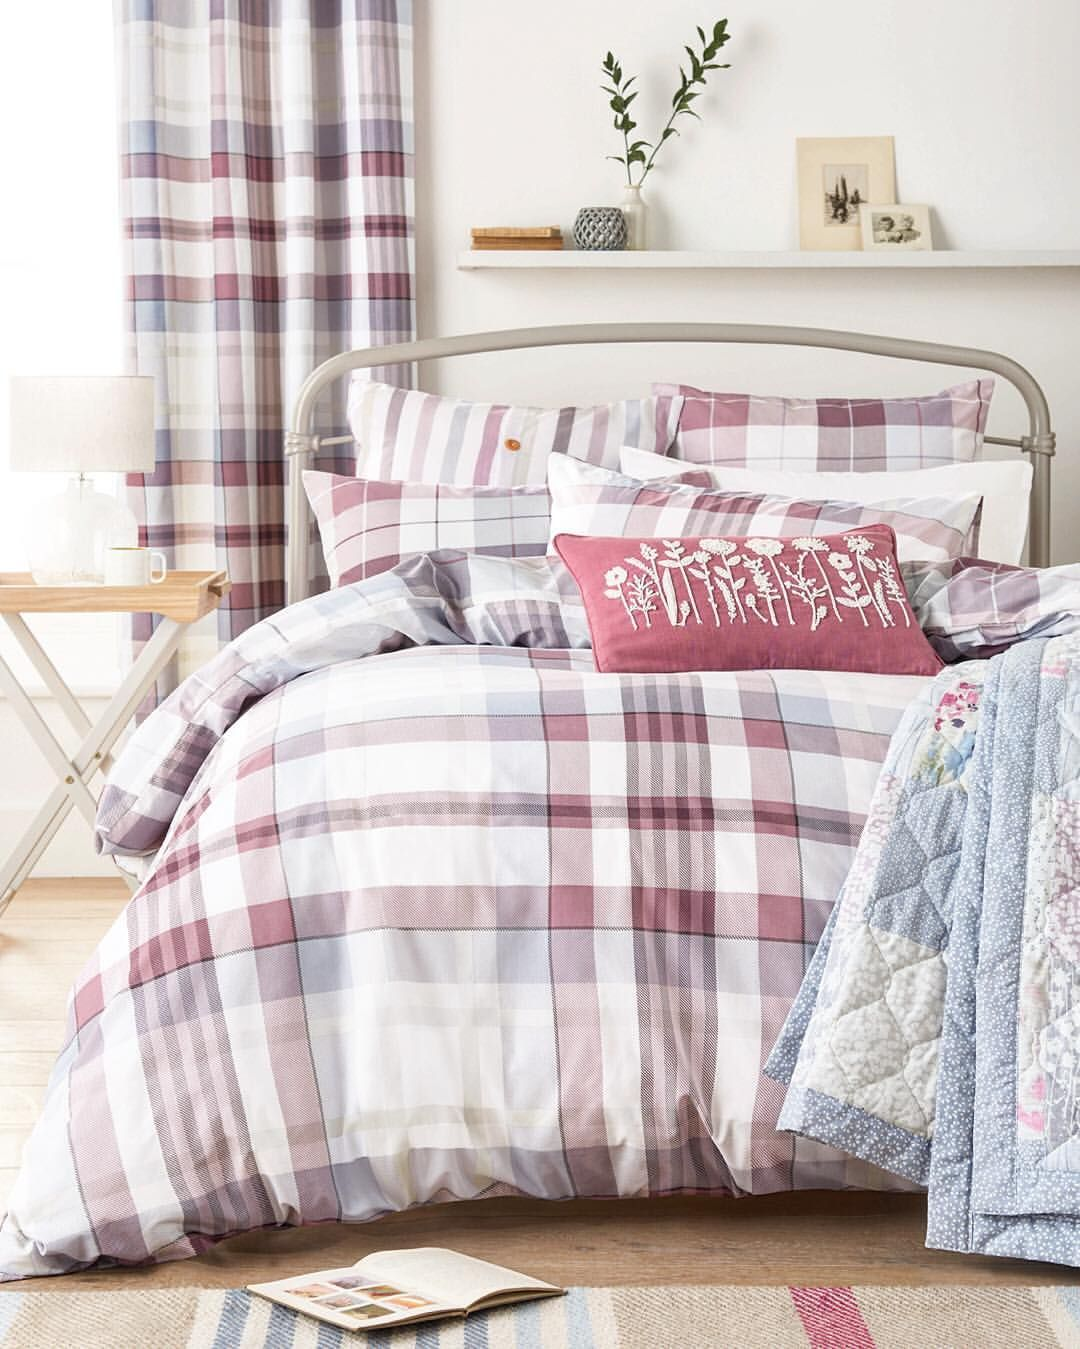 Just like bread and butter, left and right, table and chairs.... Sunday and your bed are an inseparable combination  Transform your bedroom into the perfect Sunday sanctuary by tapping the link in our bio and exploring NEW bedding ranges.#perfectpairs #bedding #home #homedecor #bedroom#check#countrycottage #sunday#relax Product code: 362056